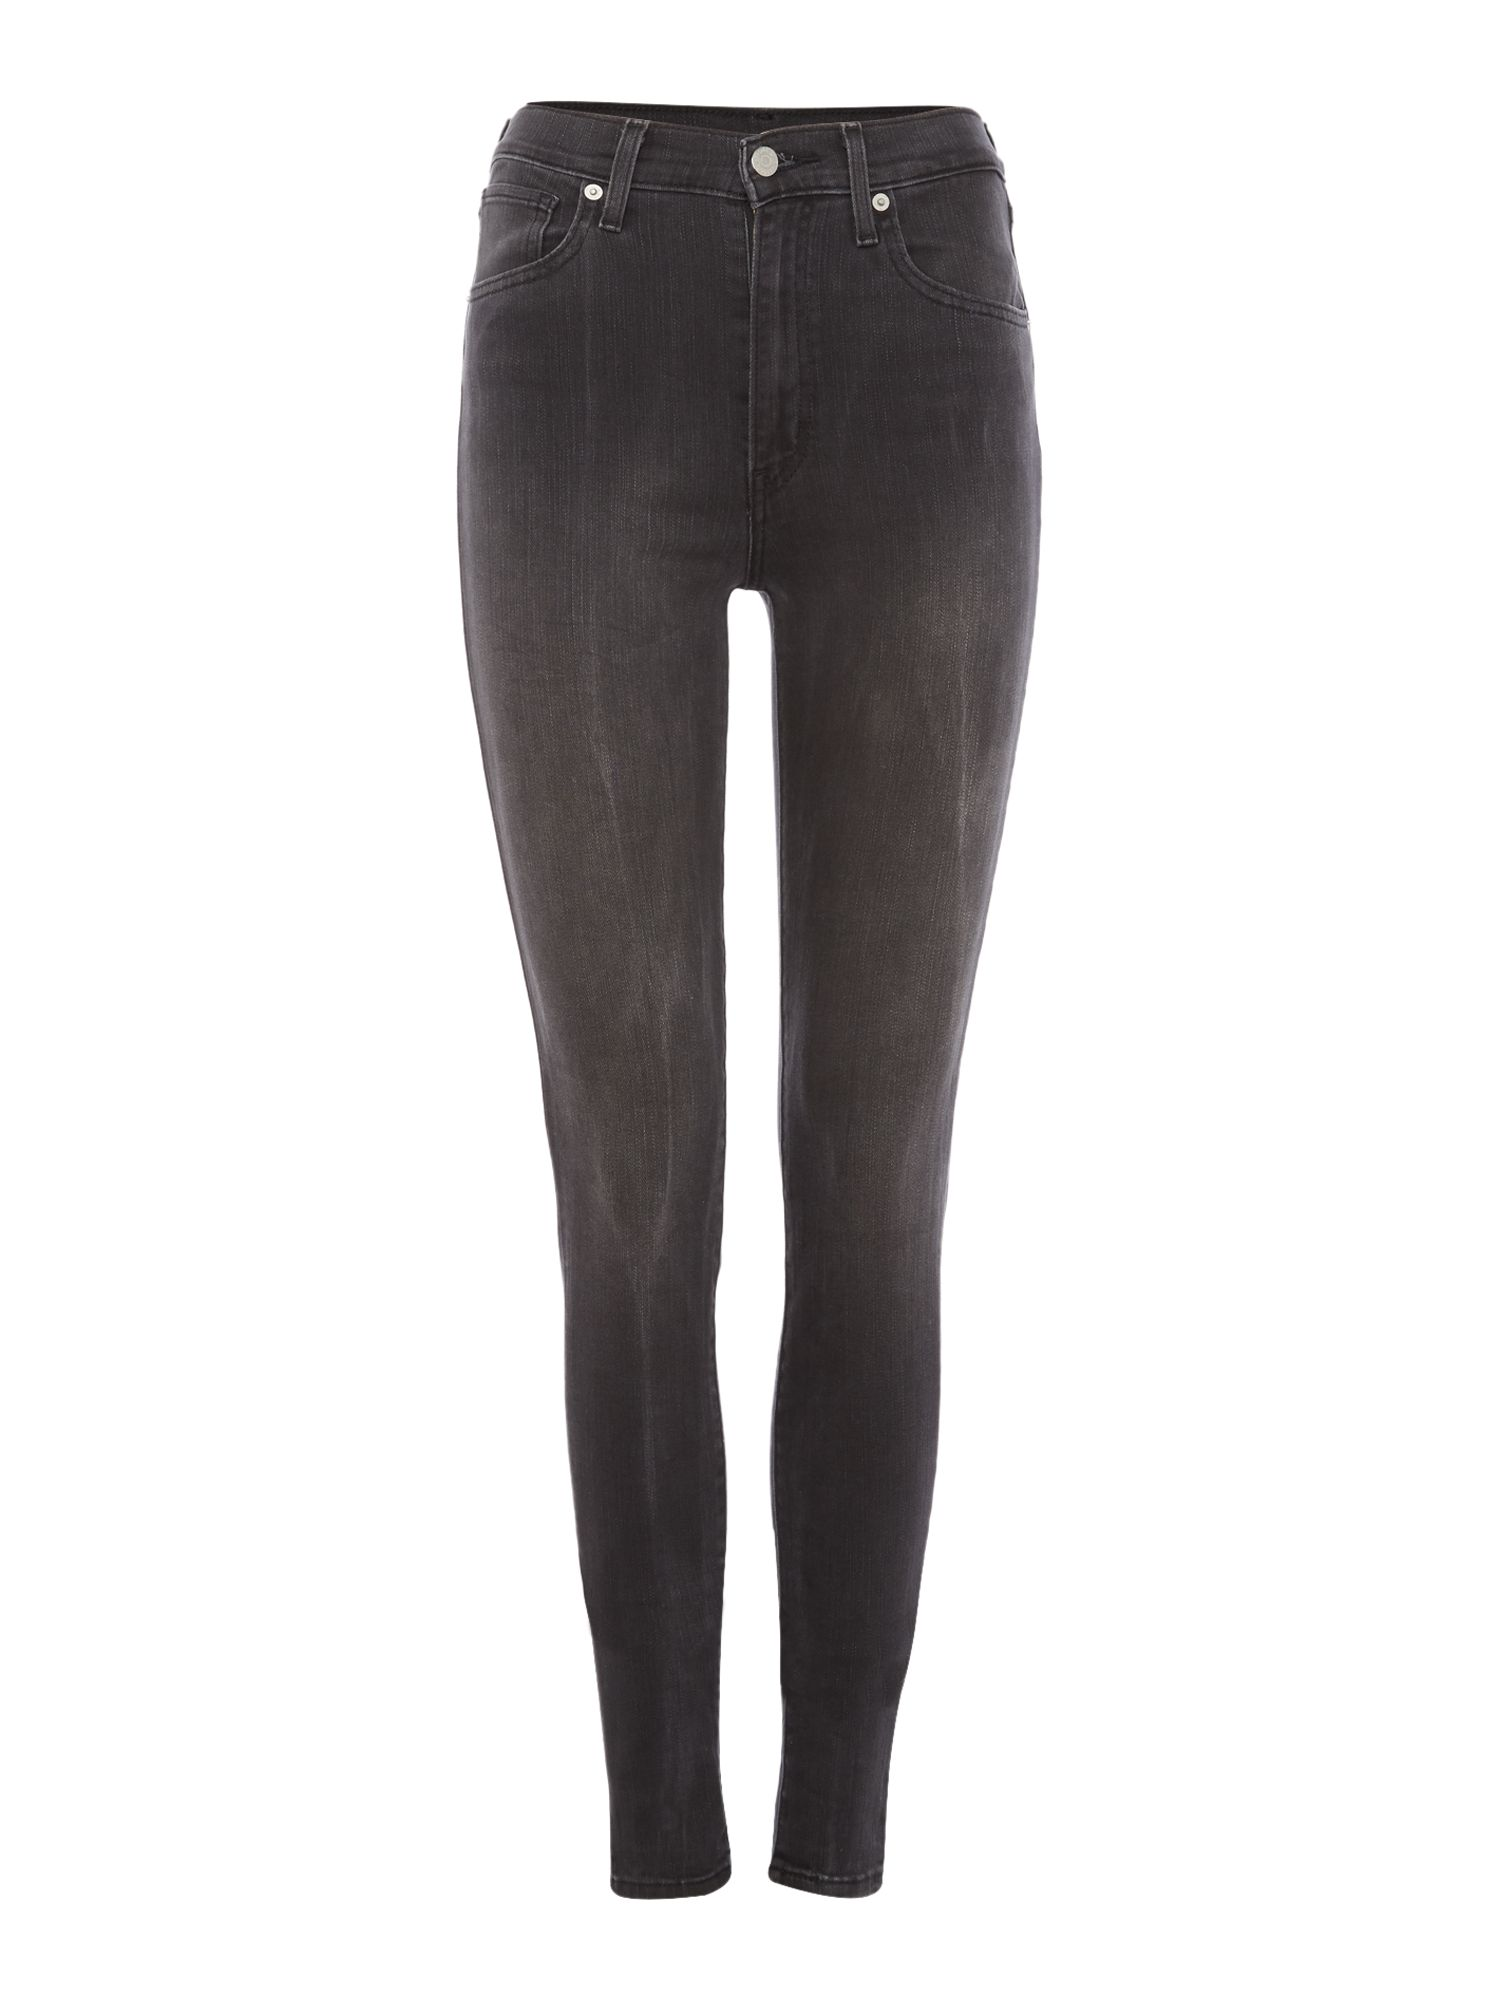 Levis Mile High Jeans in San Francisco Nights Grey